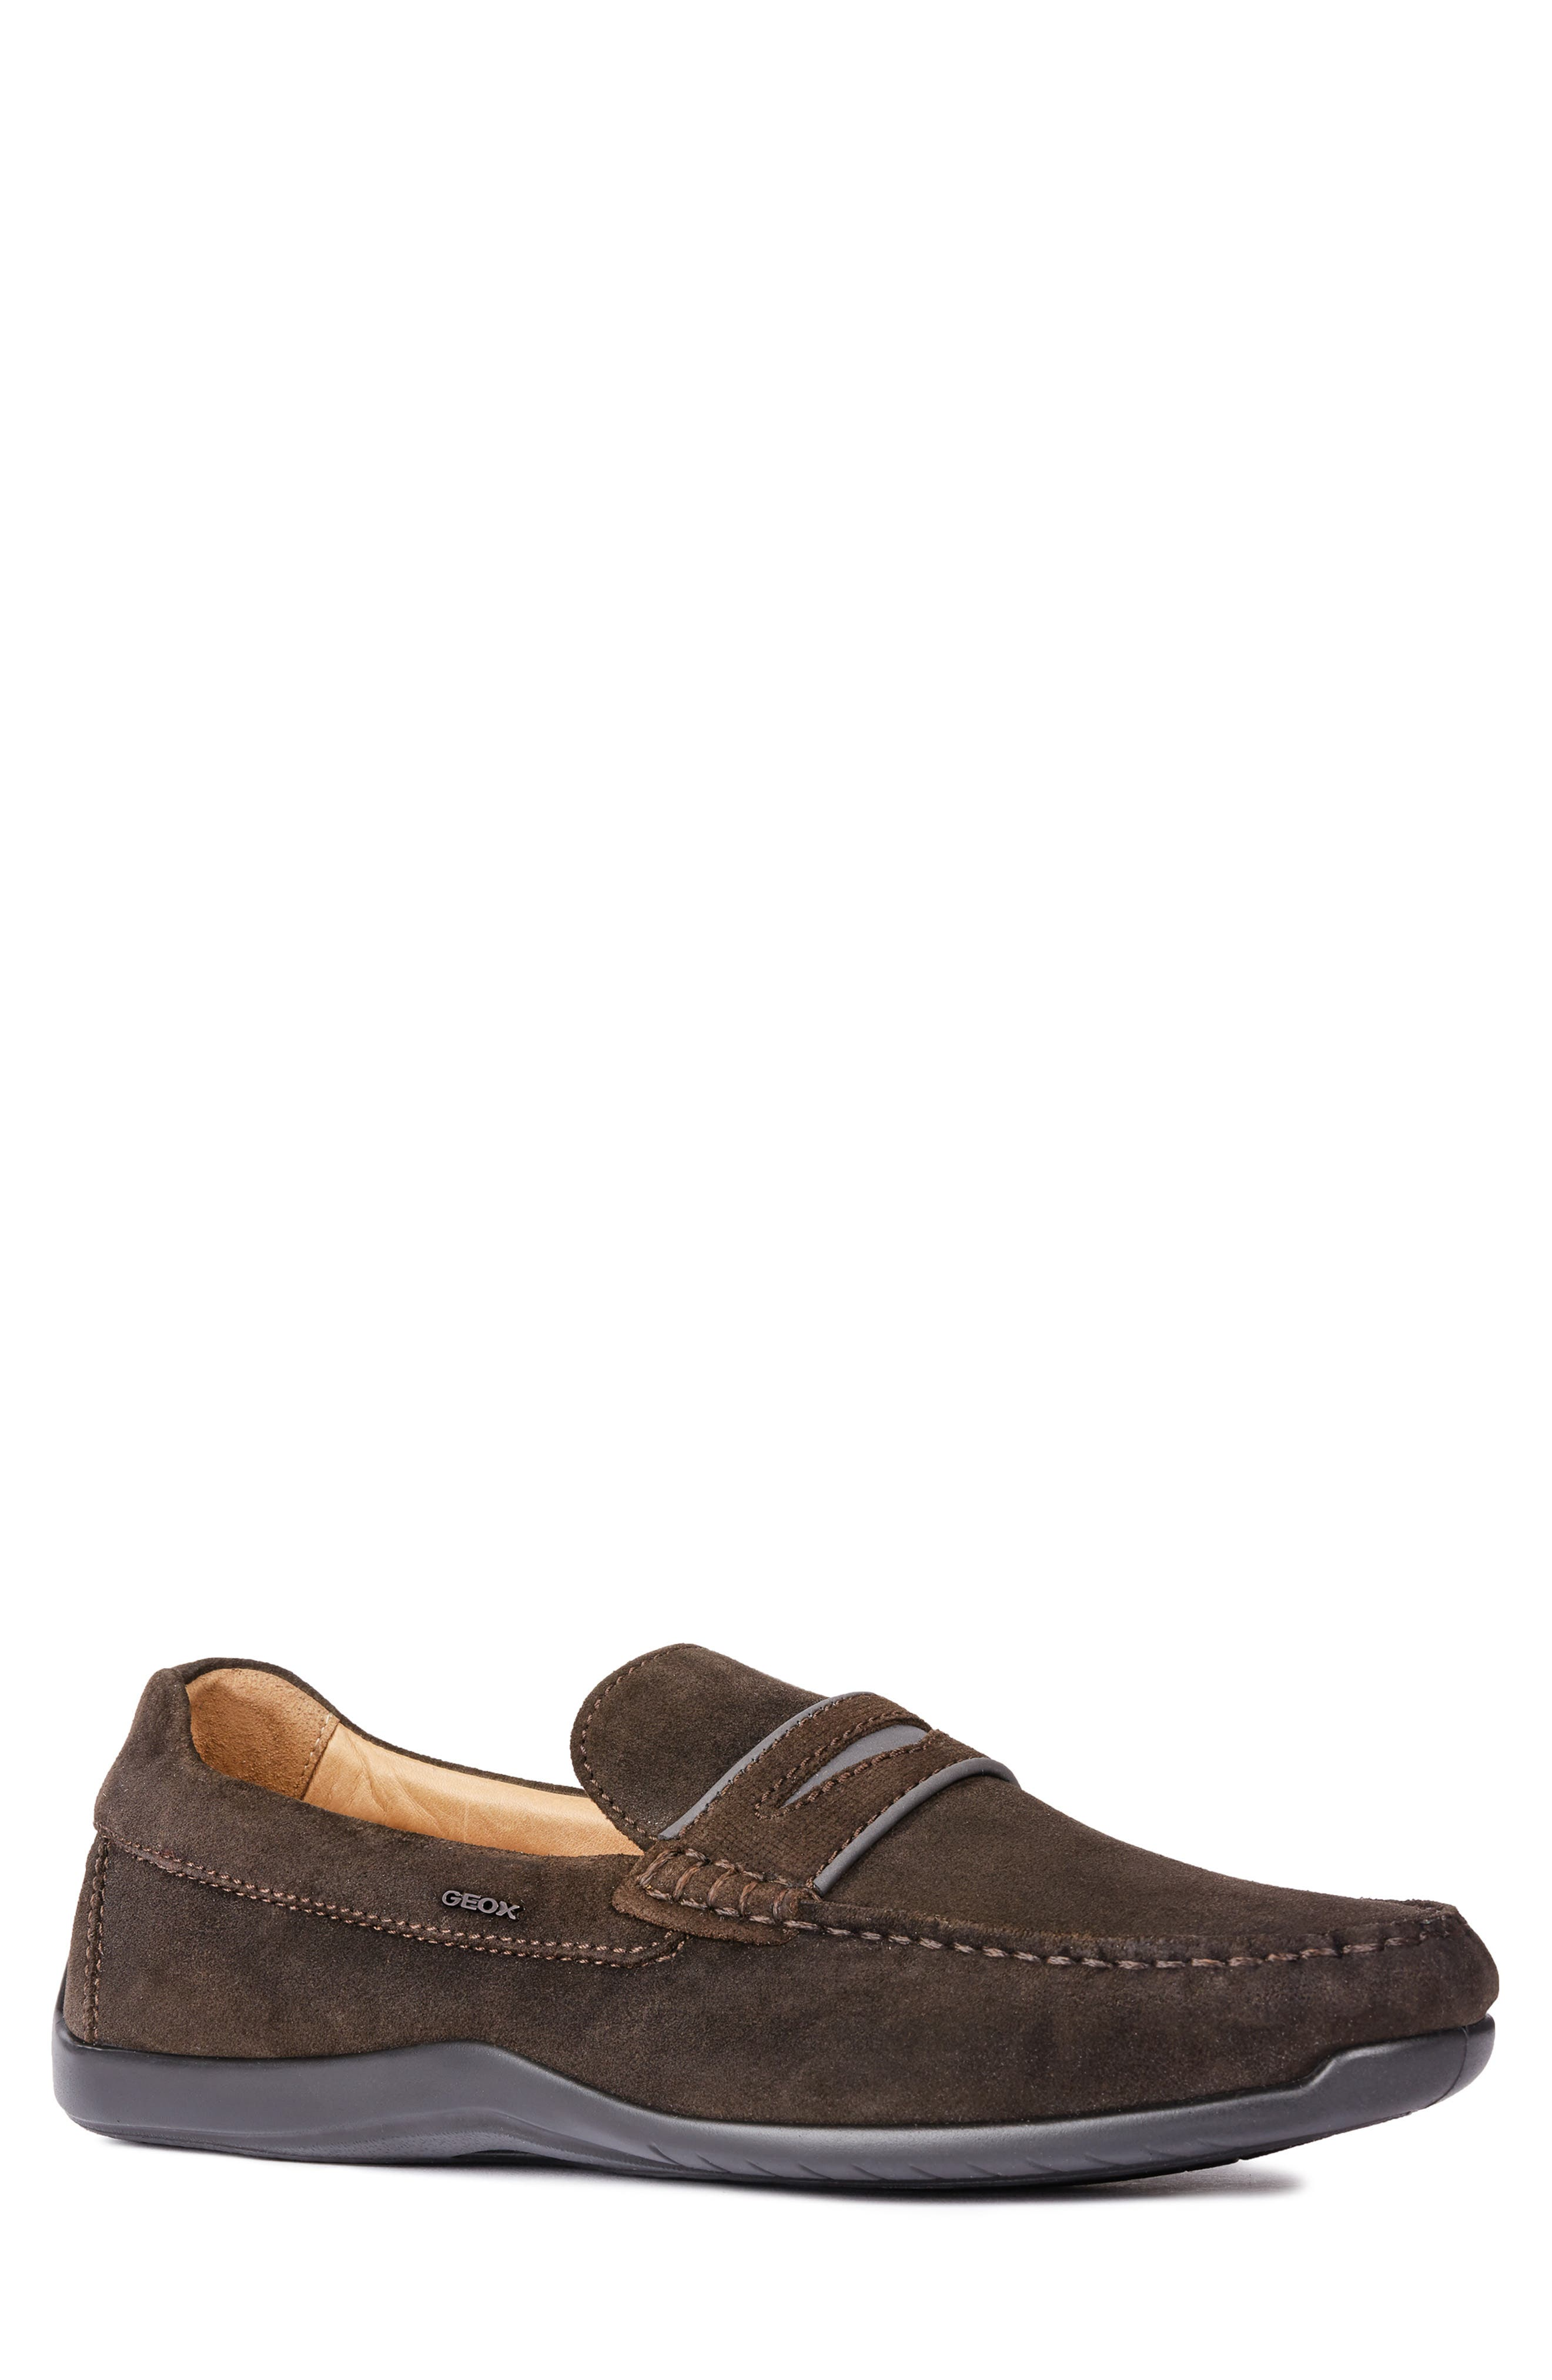 GEOX, Xense Mox 15 Penny Loafer, Main thumbnail 1, color, 248